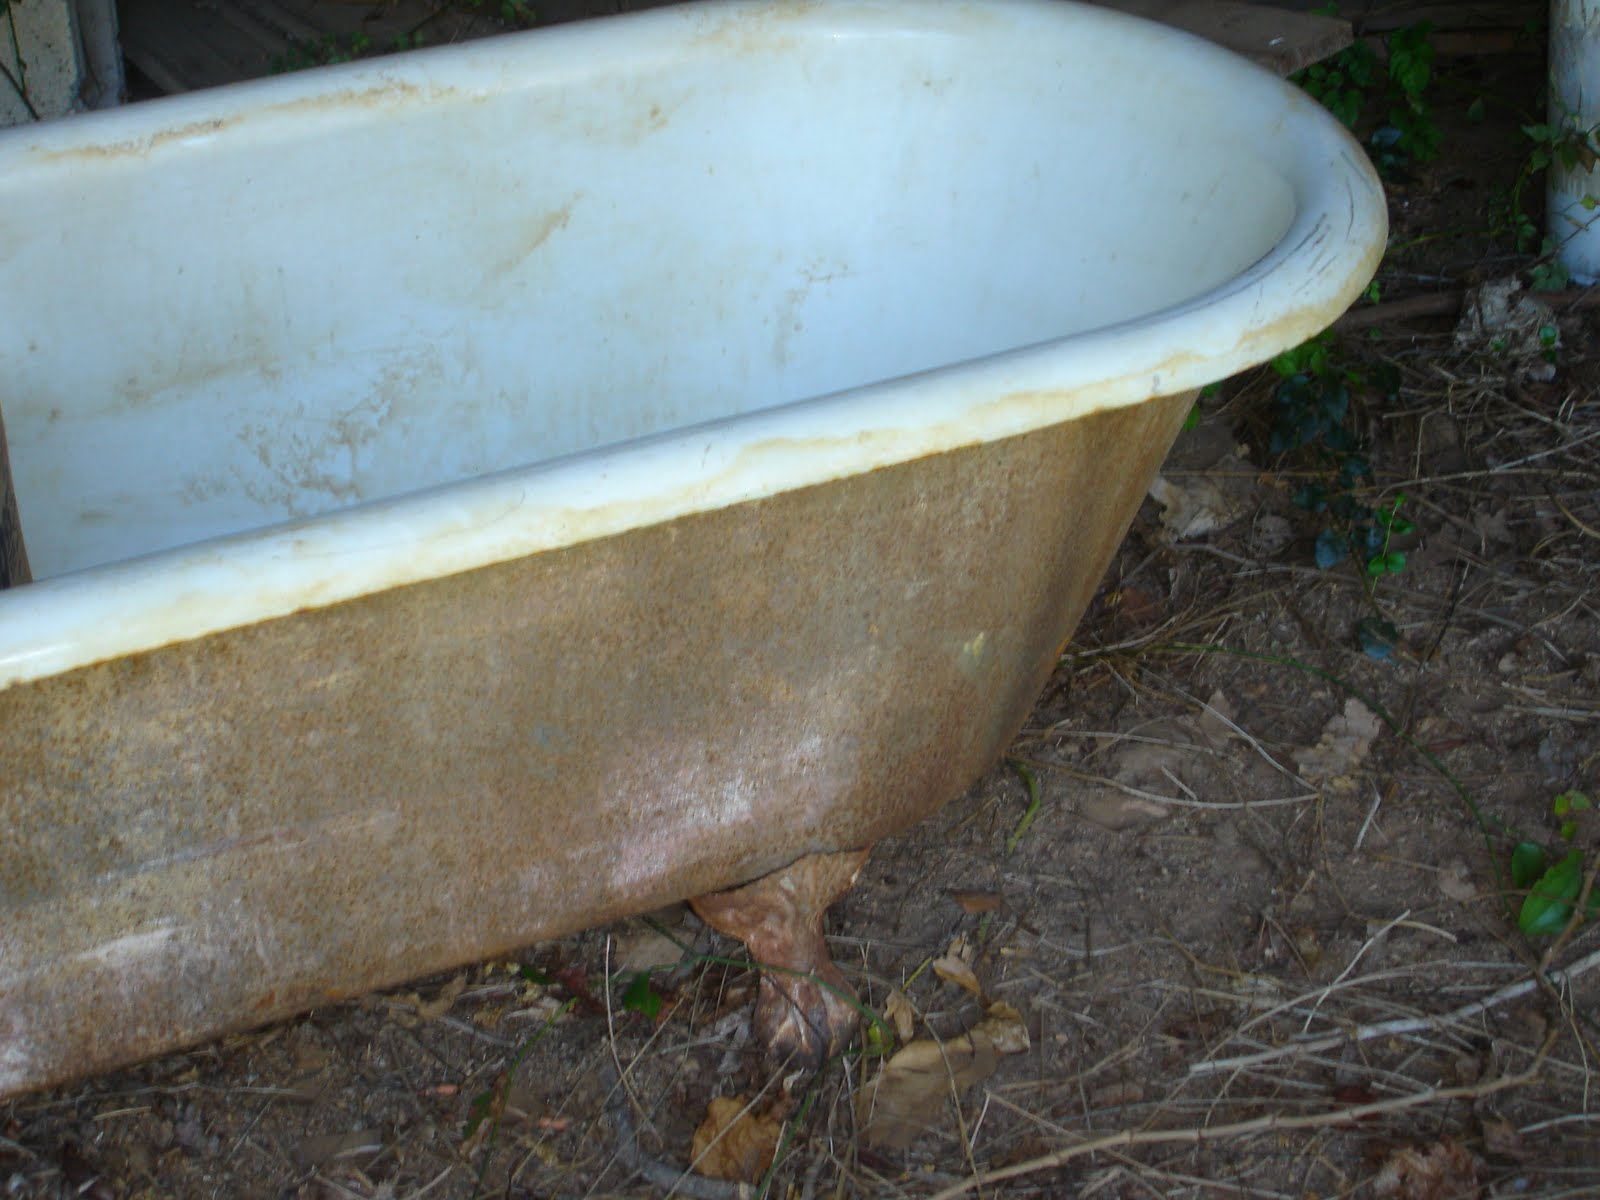 Green Pastures Farm: The Clawfoot Tub